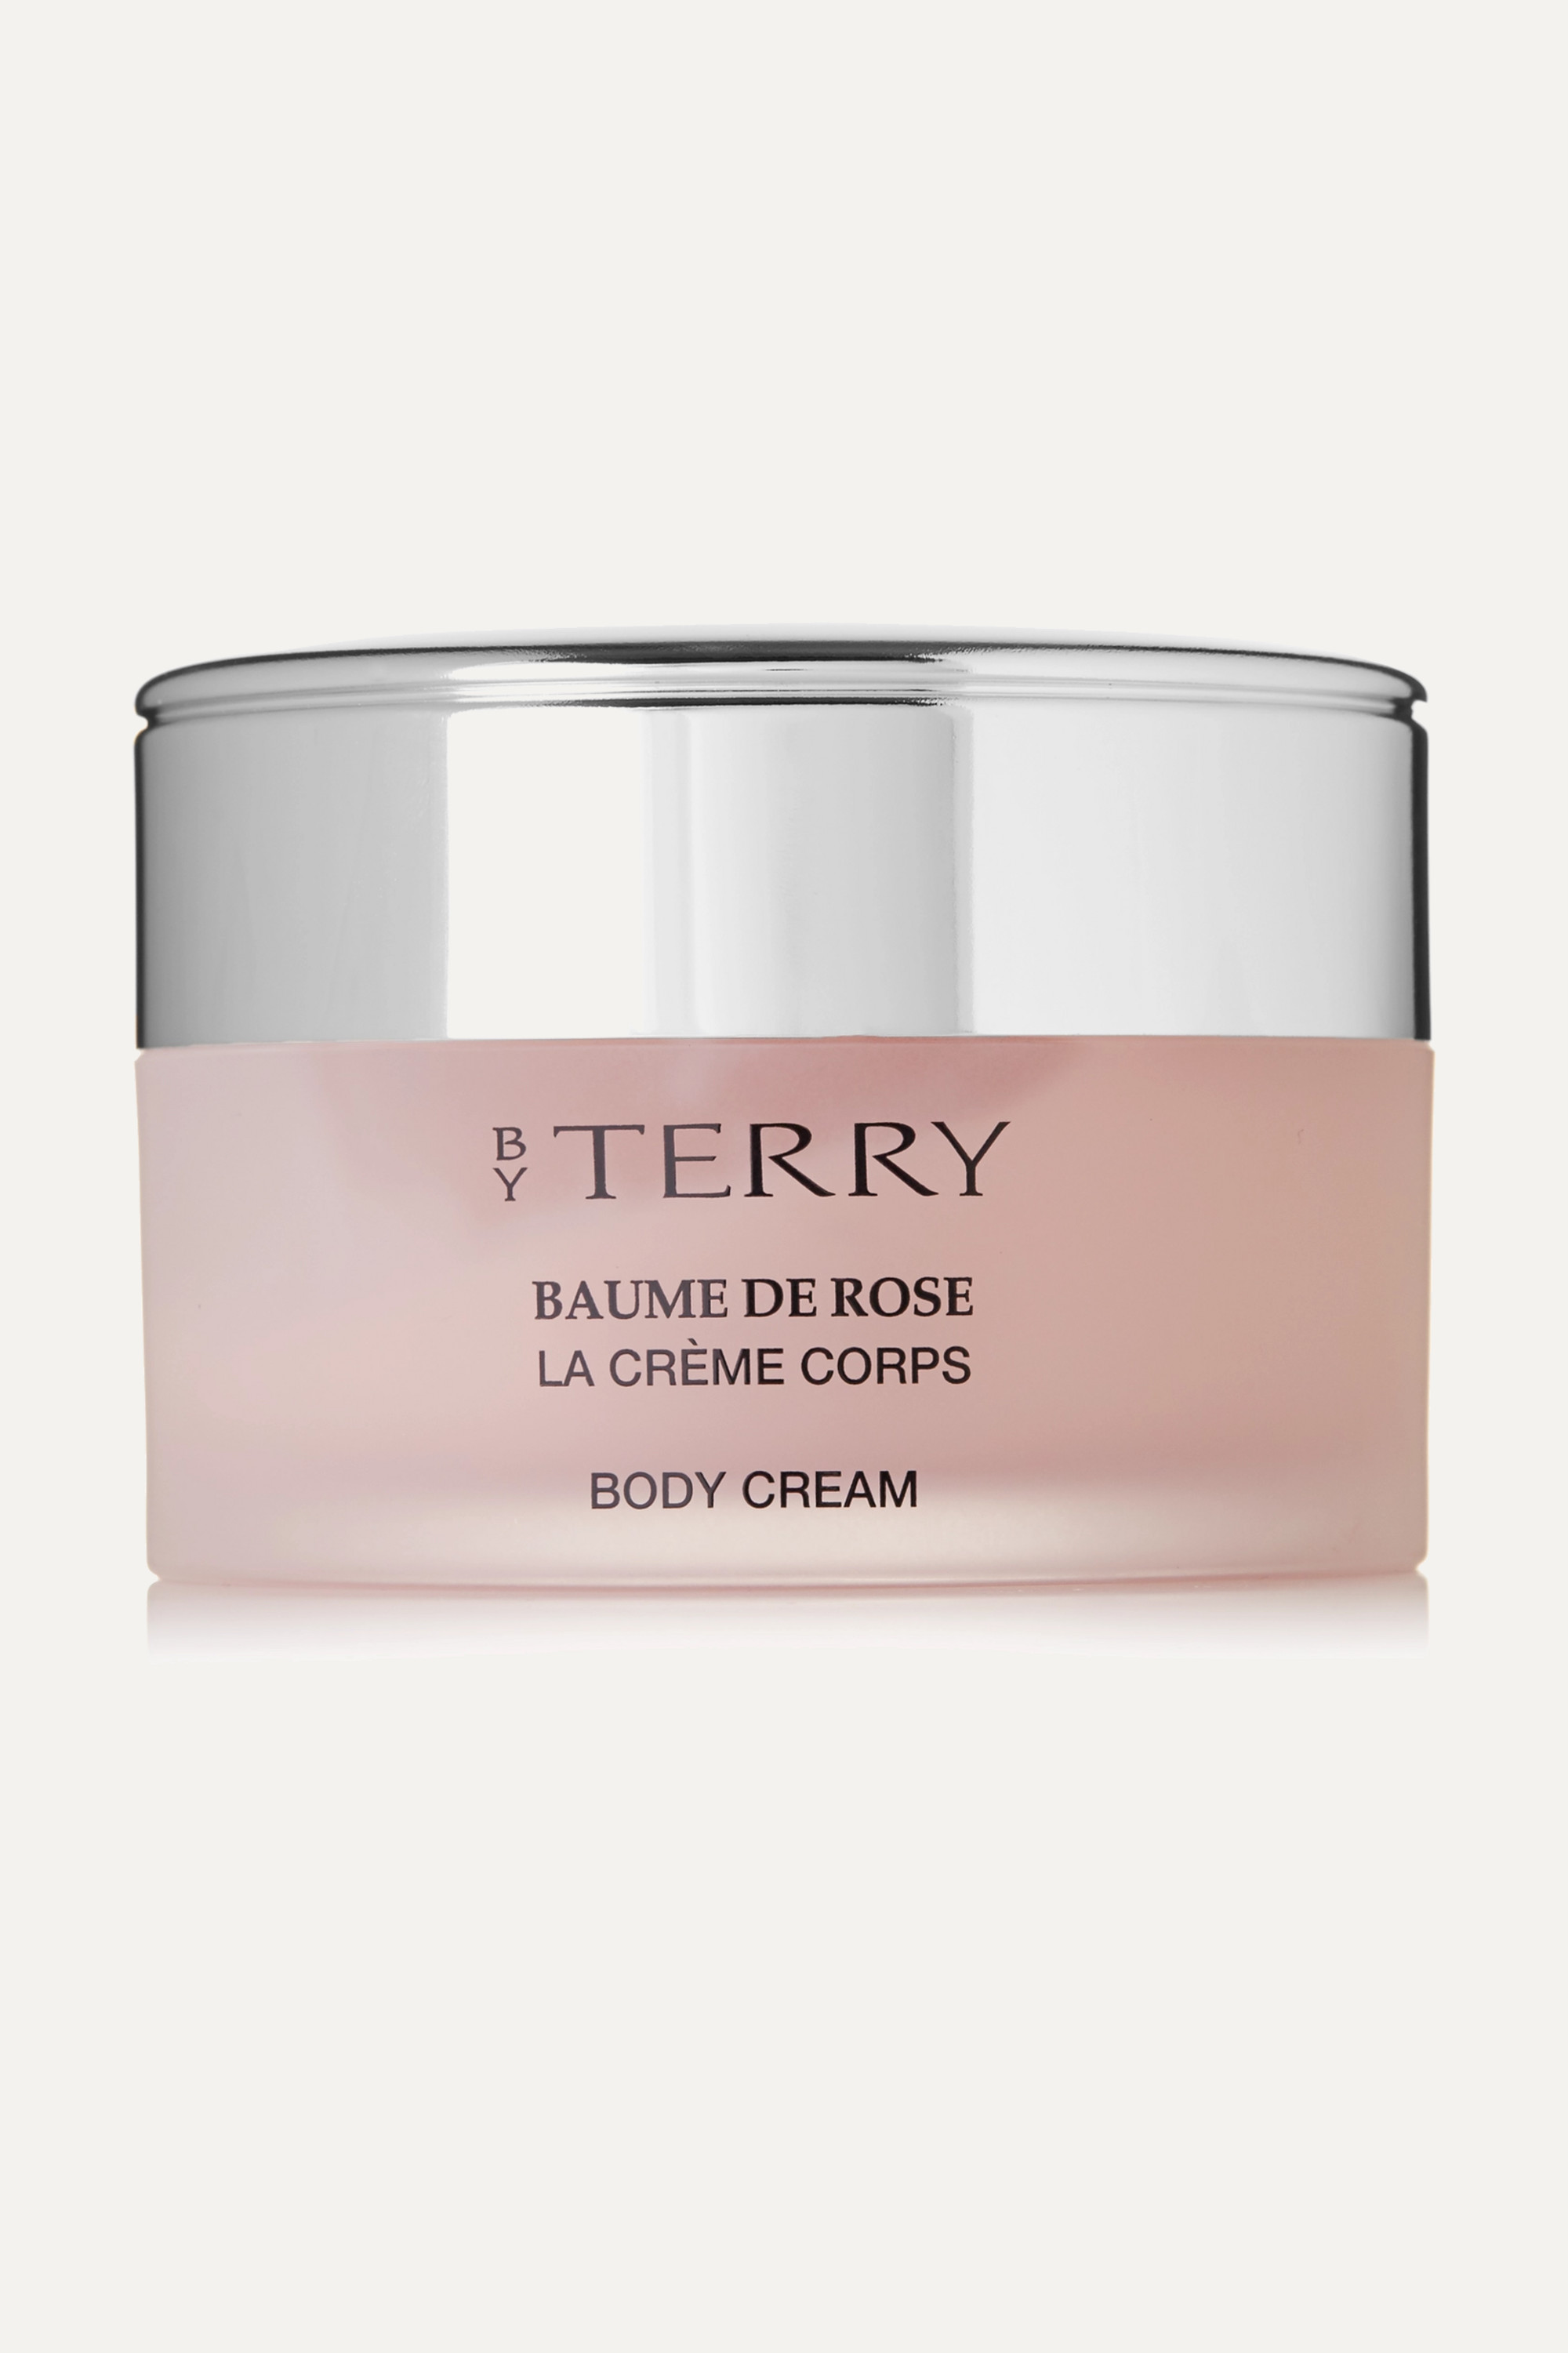 BY TERRY Baume De Rose Body Cream, 200ml